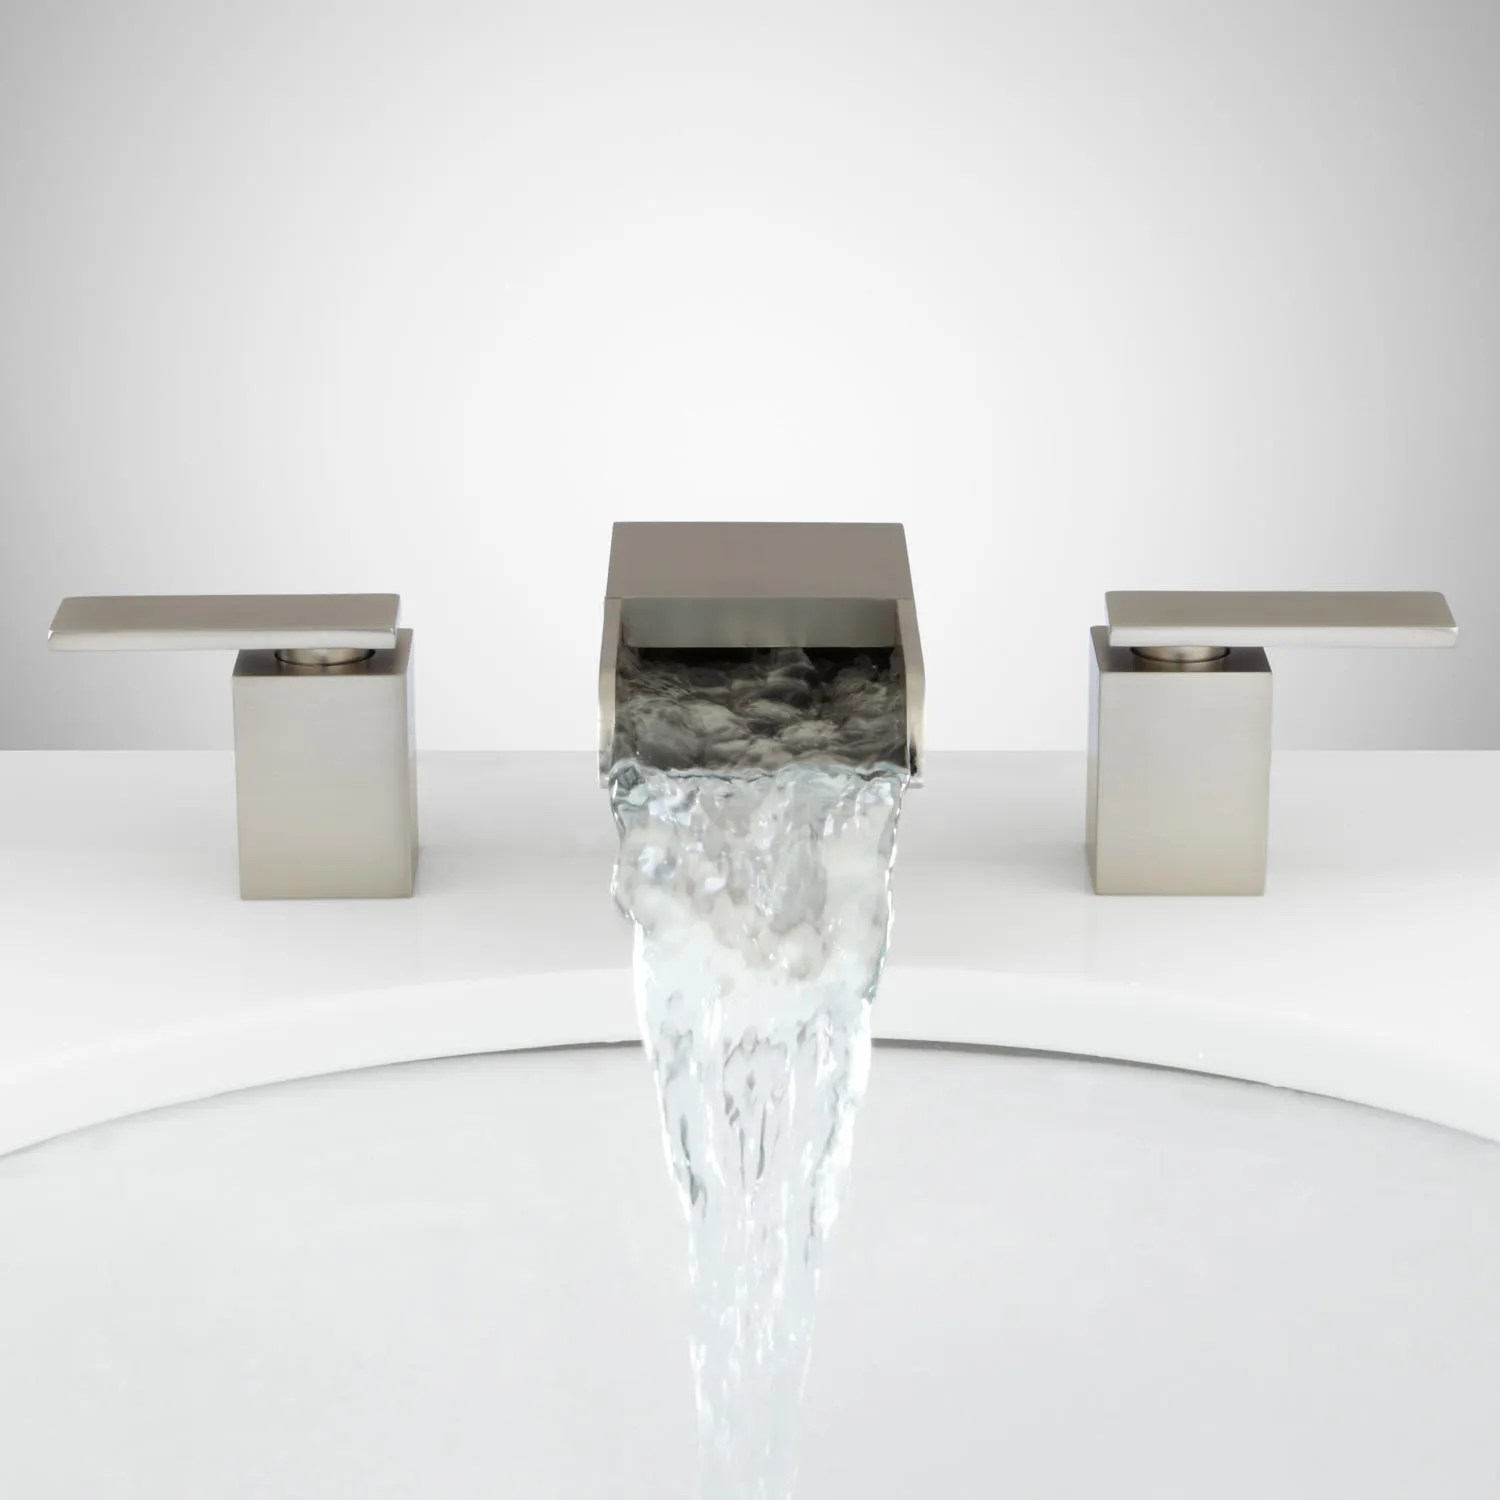 brushed nickel kitchen hardware compost pail willis widespread waterfall faucet - bathroom